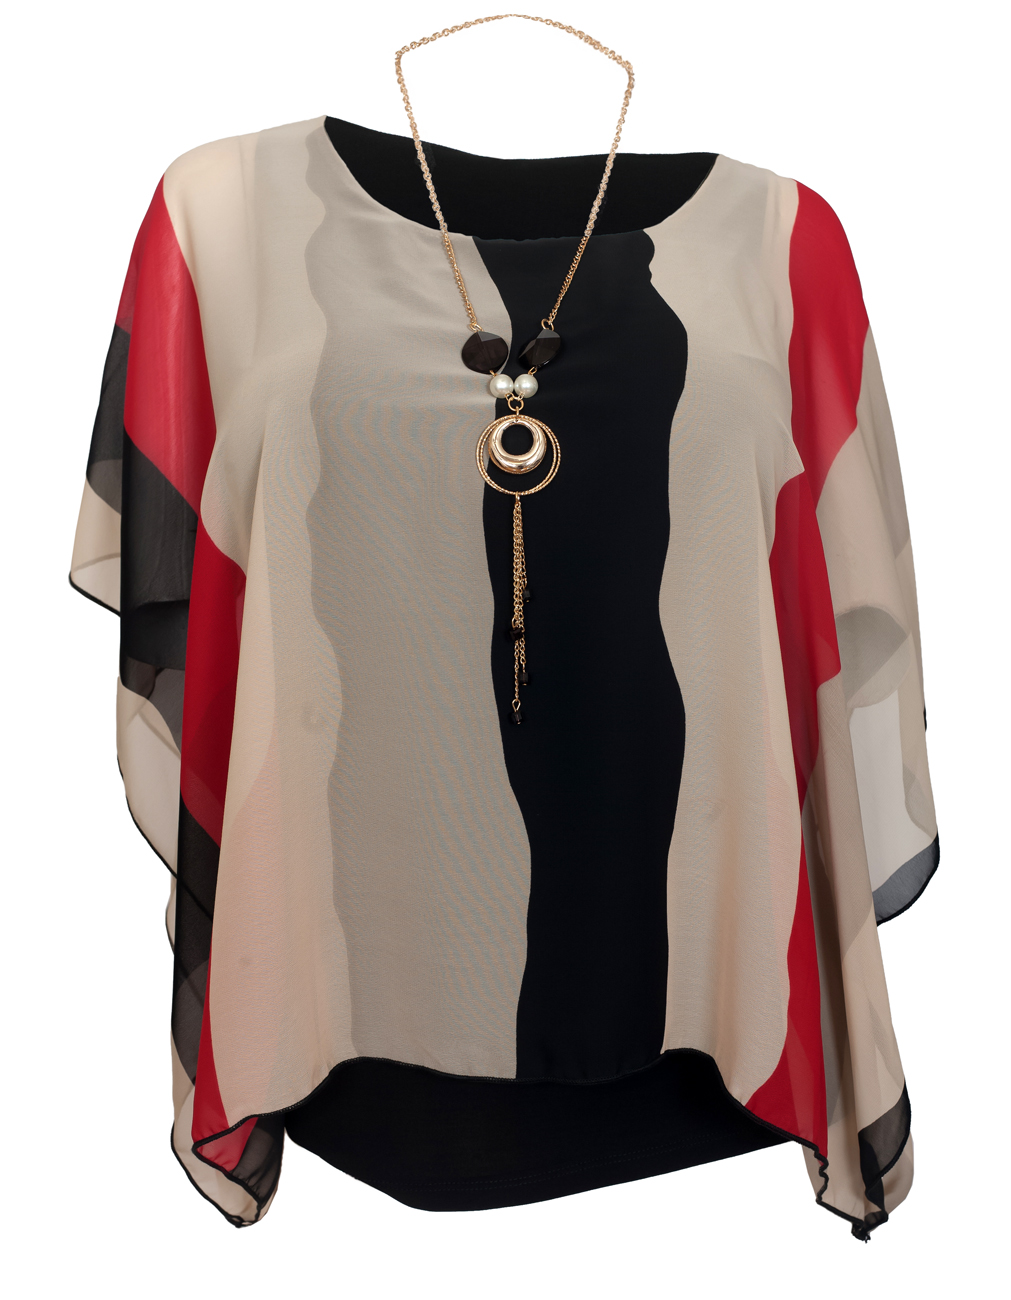 eVogues Women's Layered Square Poncho Top Red Stripe Print 1792 by eVogues Apparel